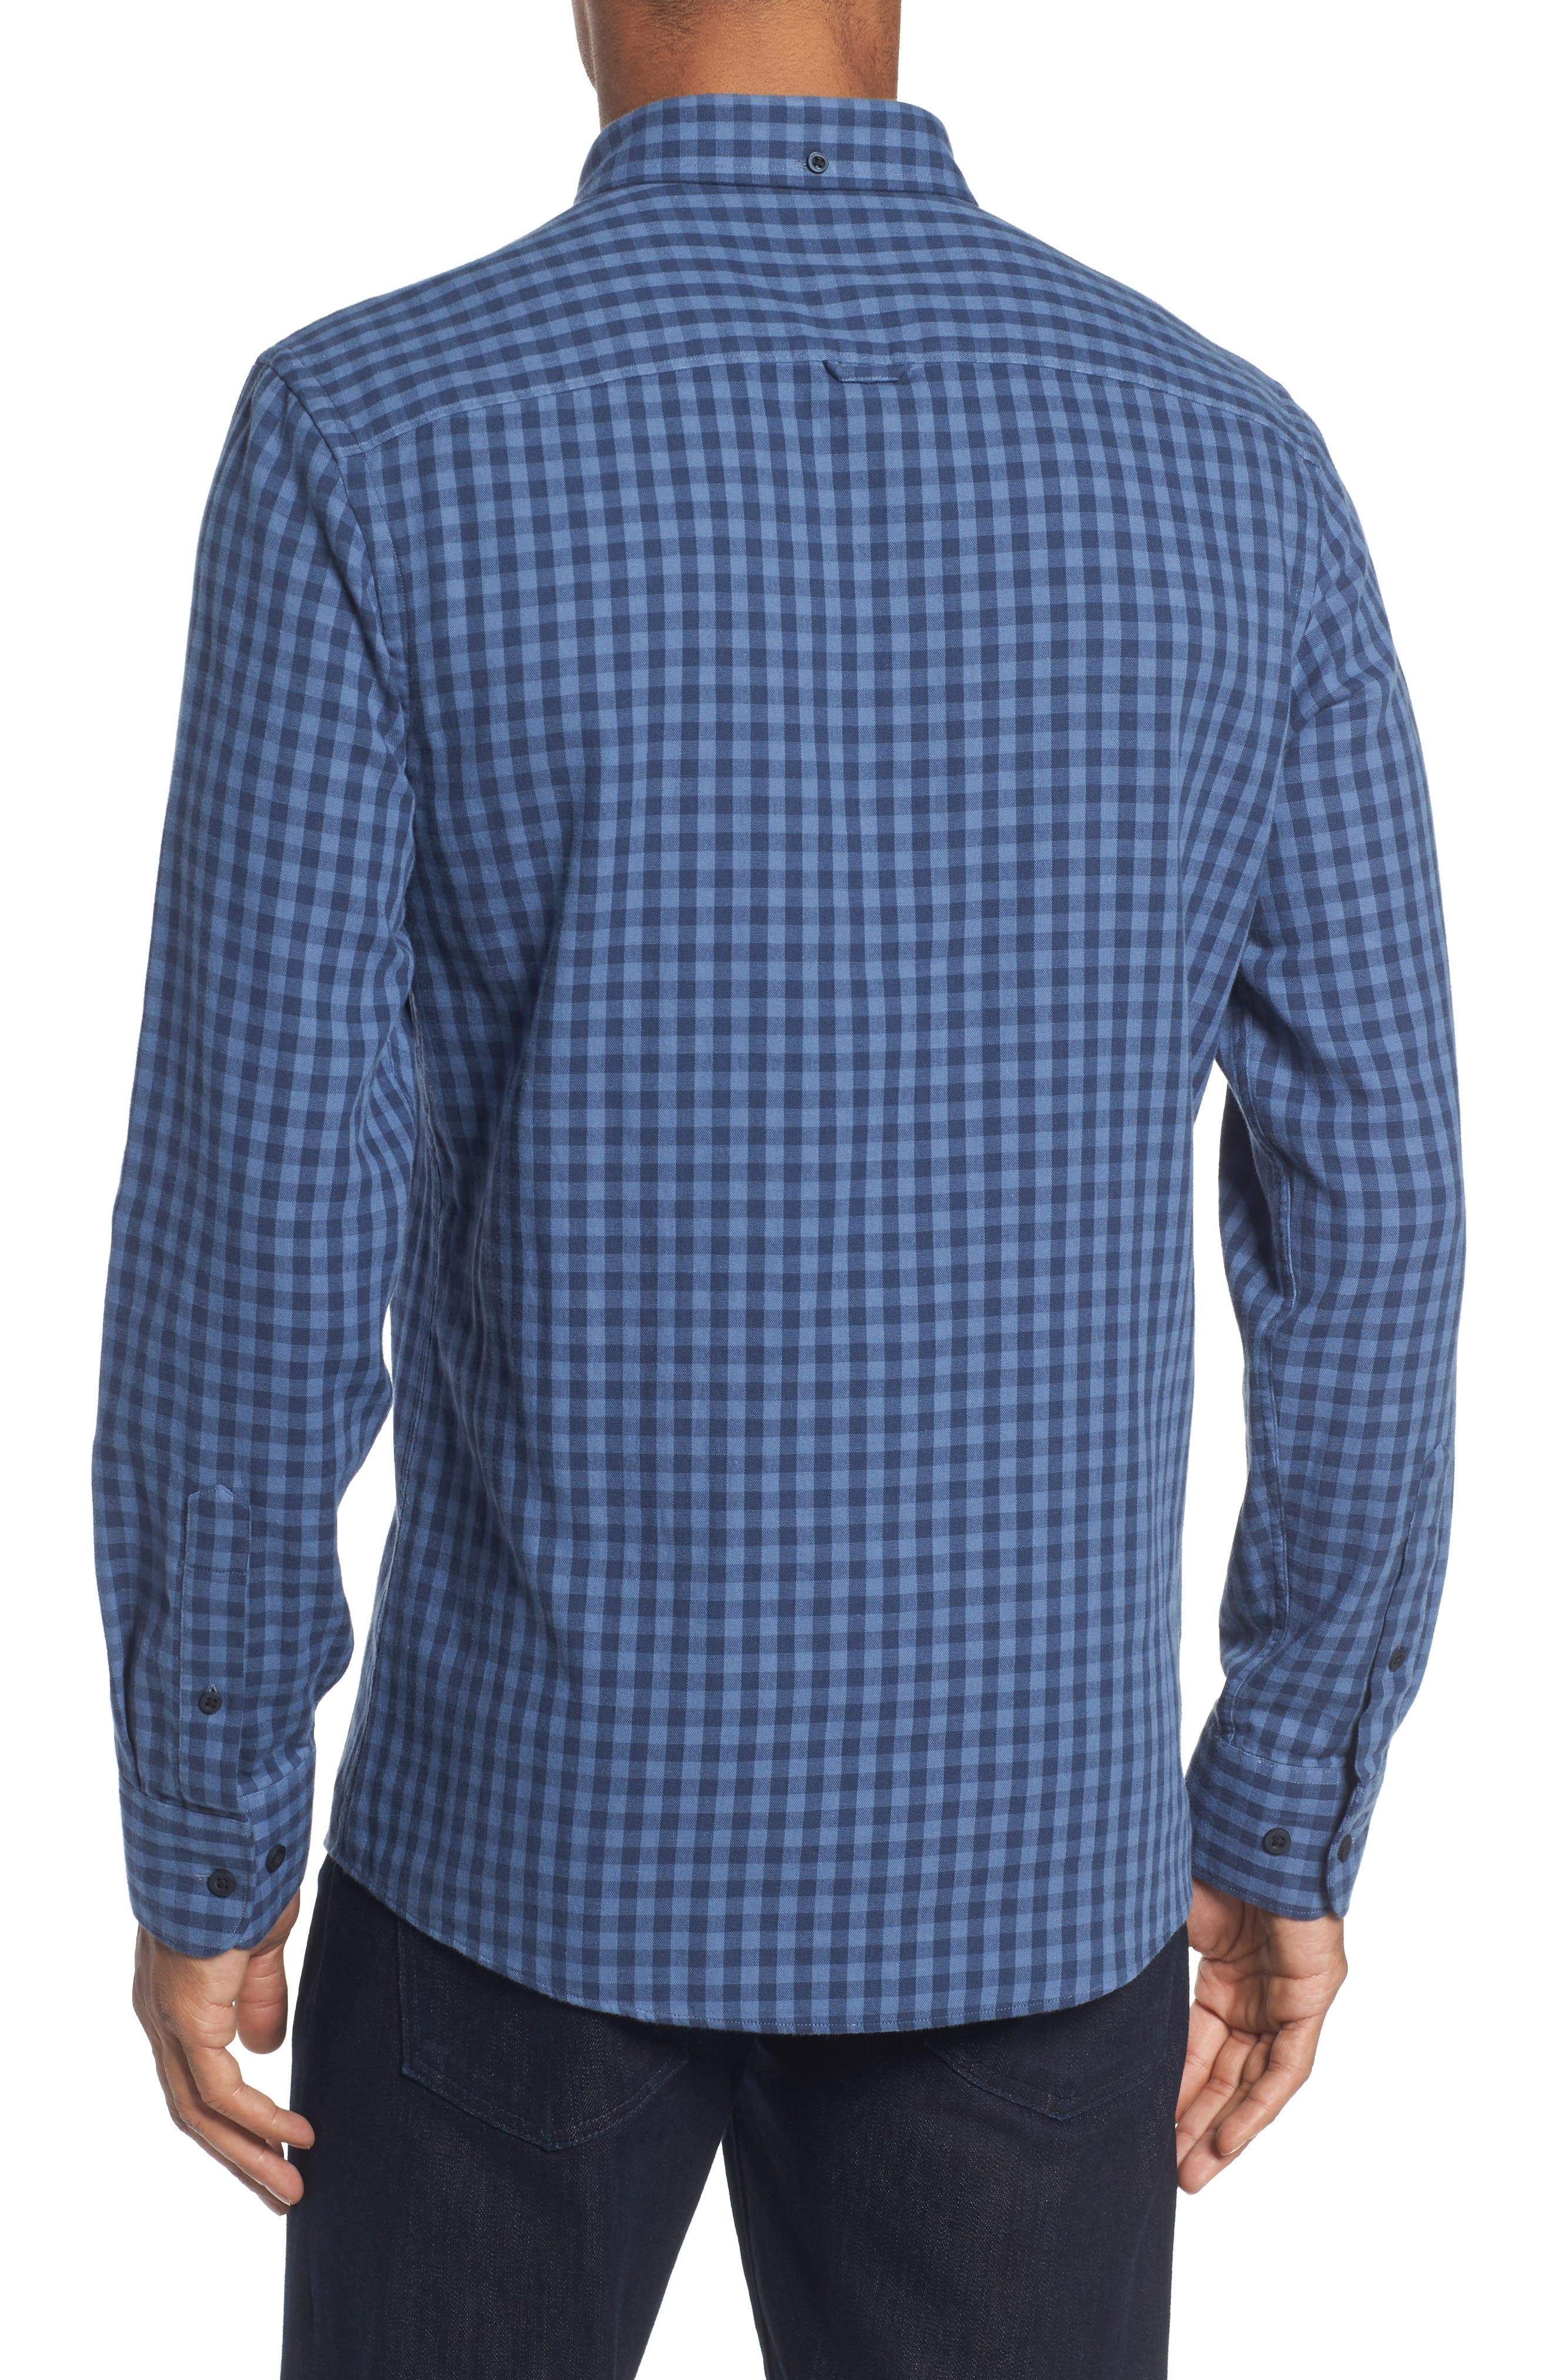 Trim Fit Duofold Check Sport Shirt,                             Alternate thumbnail 2, color,                             Blue Canal Navy Plaid Duofold